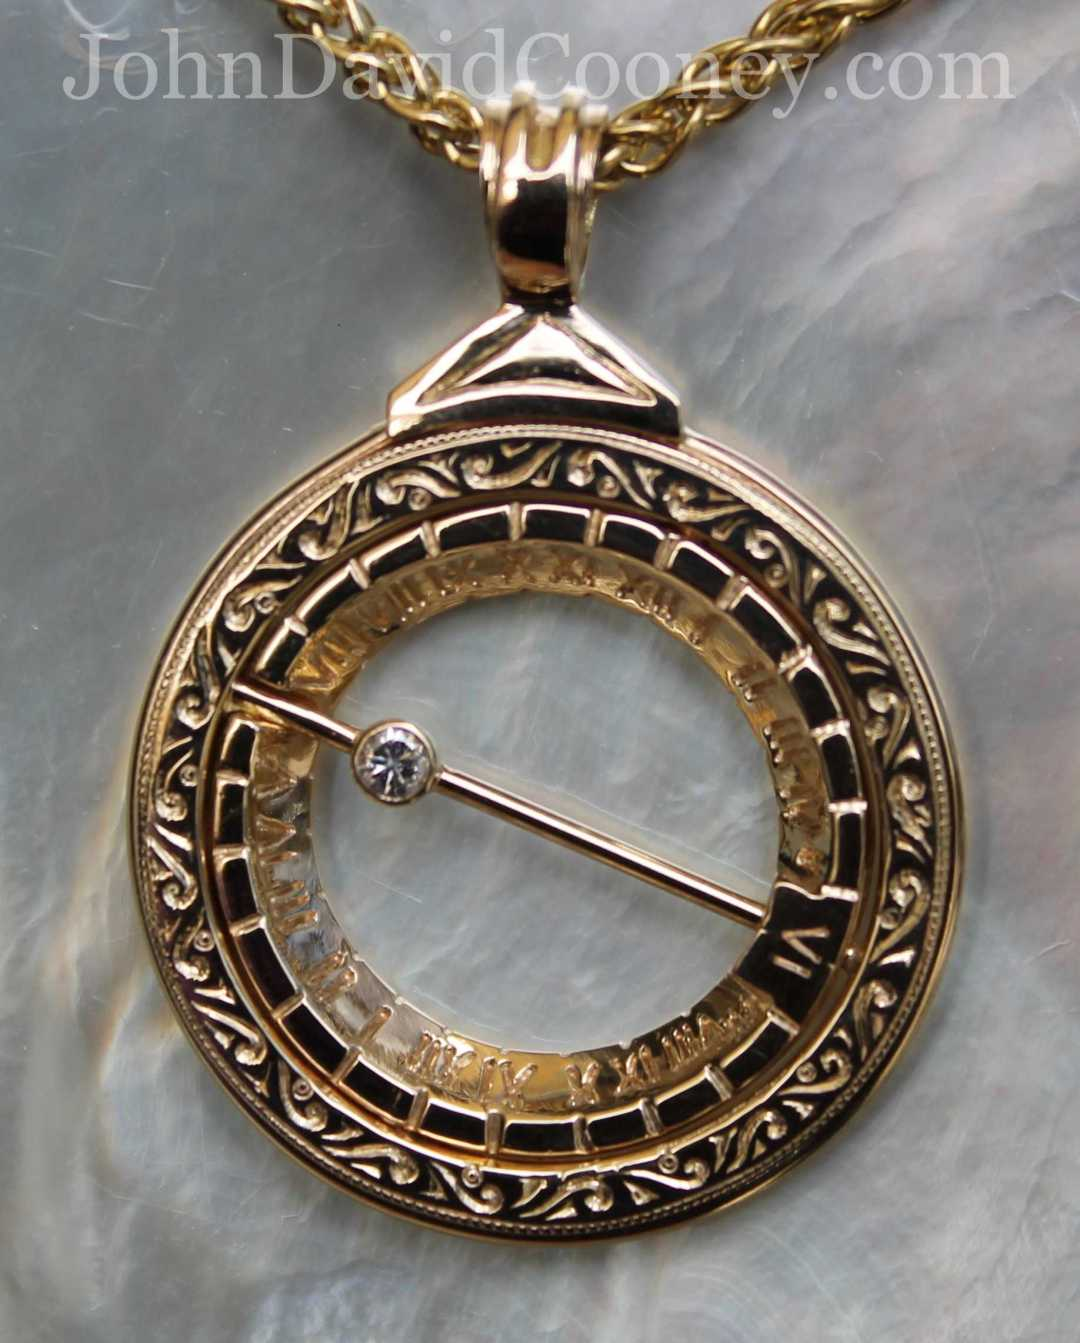 14K YELLOW GOLD. 5 PT DIAMOND. ASTRONOMICAL RING DIALS ARE ANCIENT TIMES PIECES WIDELY USED WELL INTO THE 18TH CENTURY. A GIFT TO GEORGE WASHINGTON FROM LAFAYETTE THESE DIALS ARE ACTUALLY MINIATURE FOLDING ARMILARRY SPHERES A GLOBE OF THE WORLD CONSISTING OF RINGS REPRESENTING CONSTELLATIONS AND IMAGINARY CIRCLES AROUND THE EARTH.